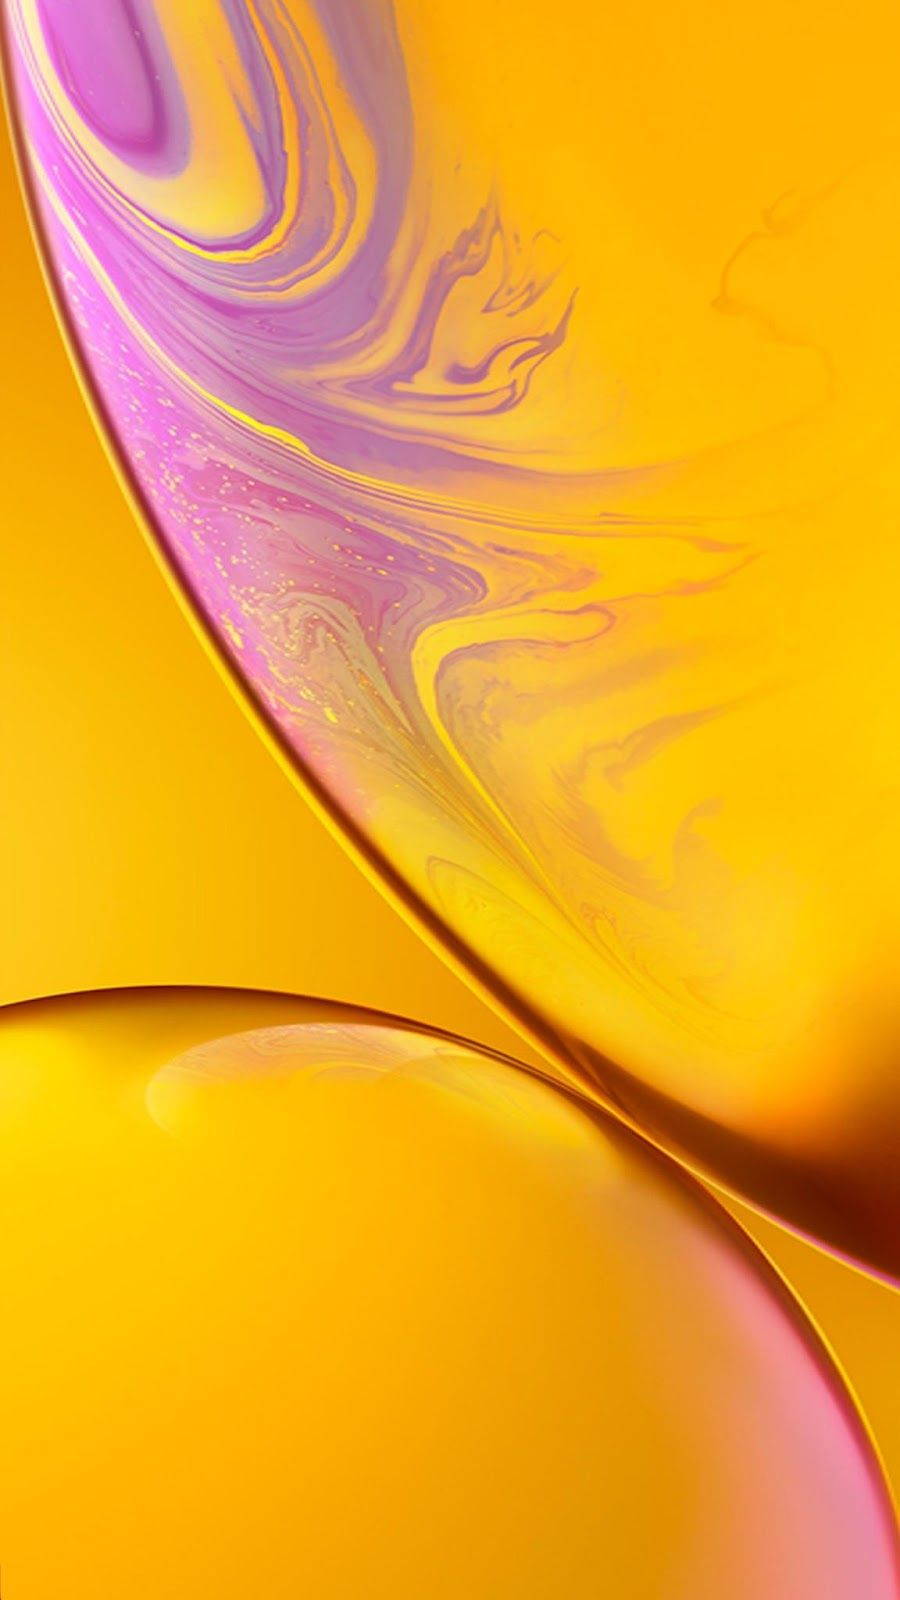 IPhone XR Wallpapers (4 Color) Melhores fundos para